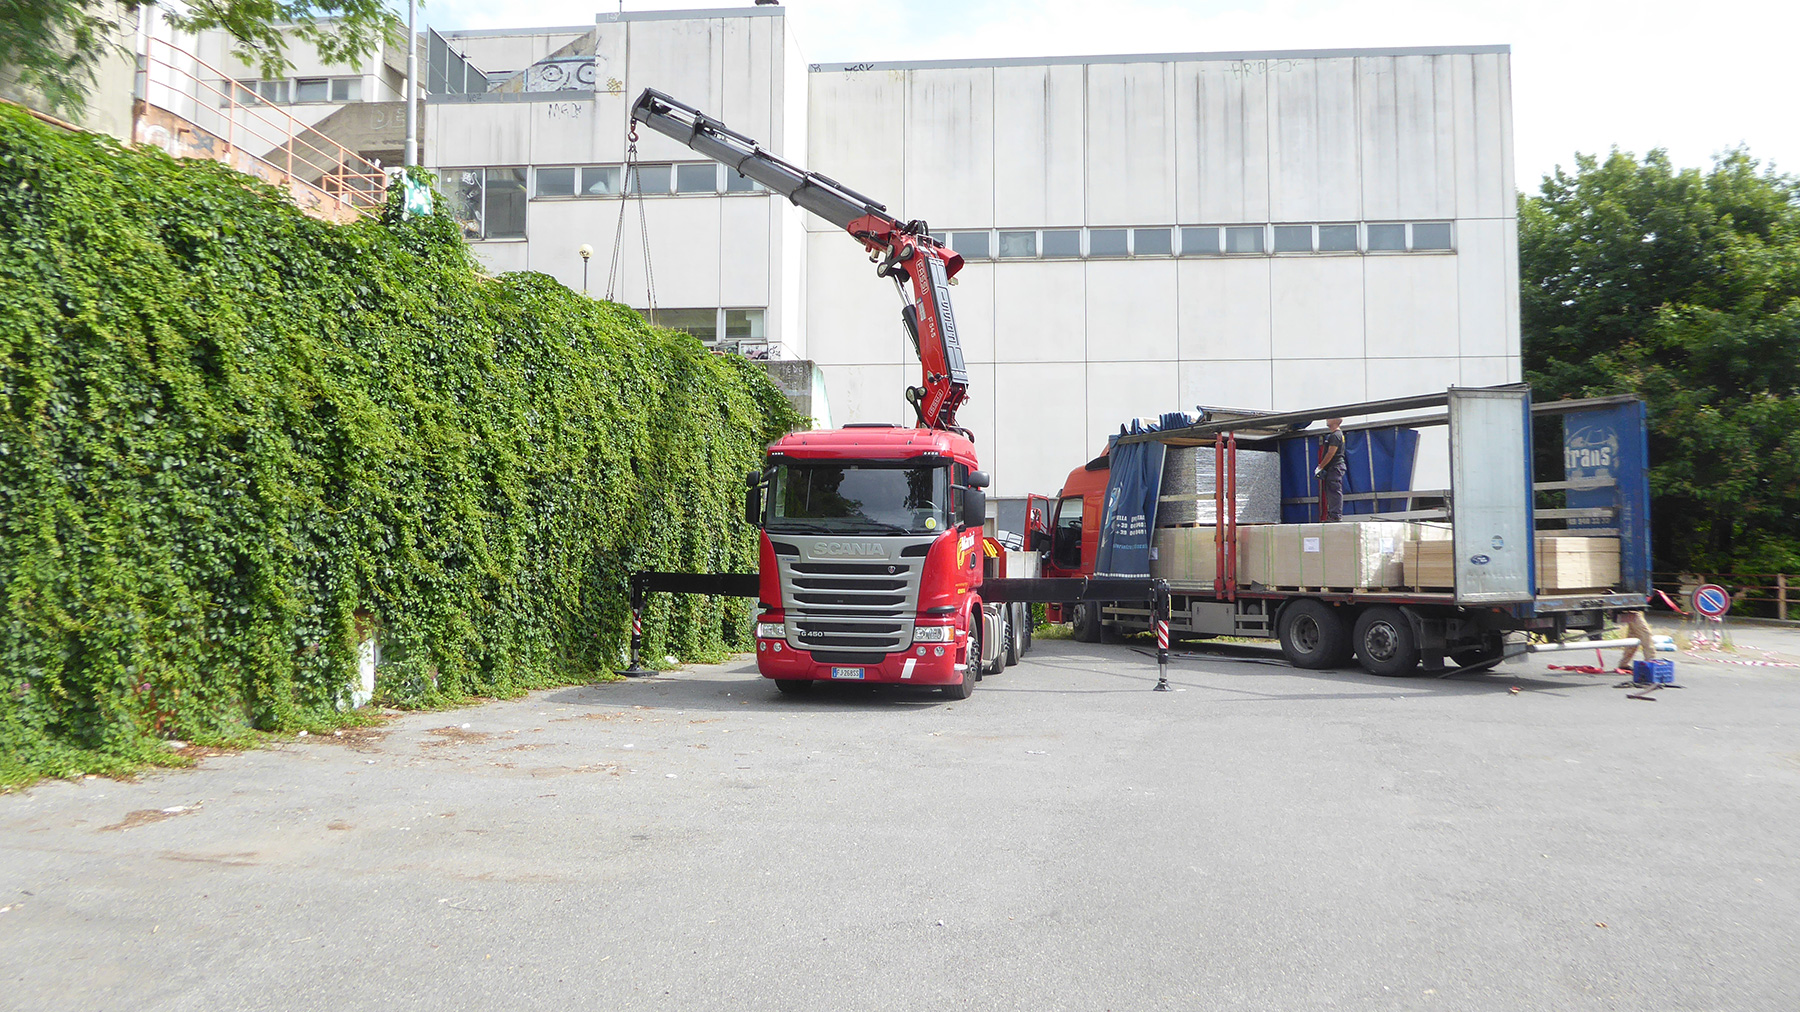 The unloading of materials